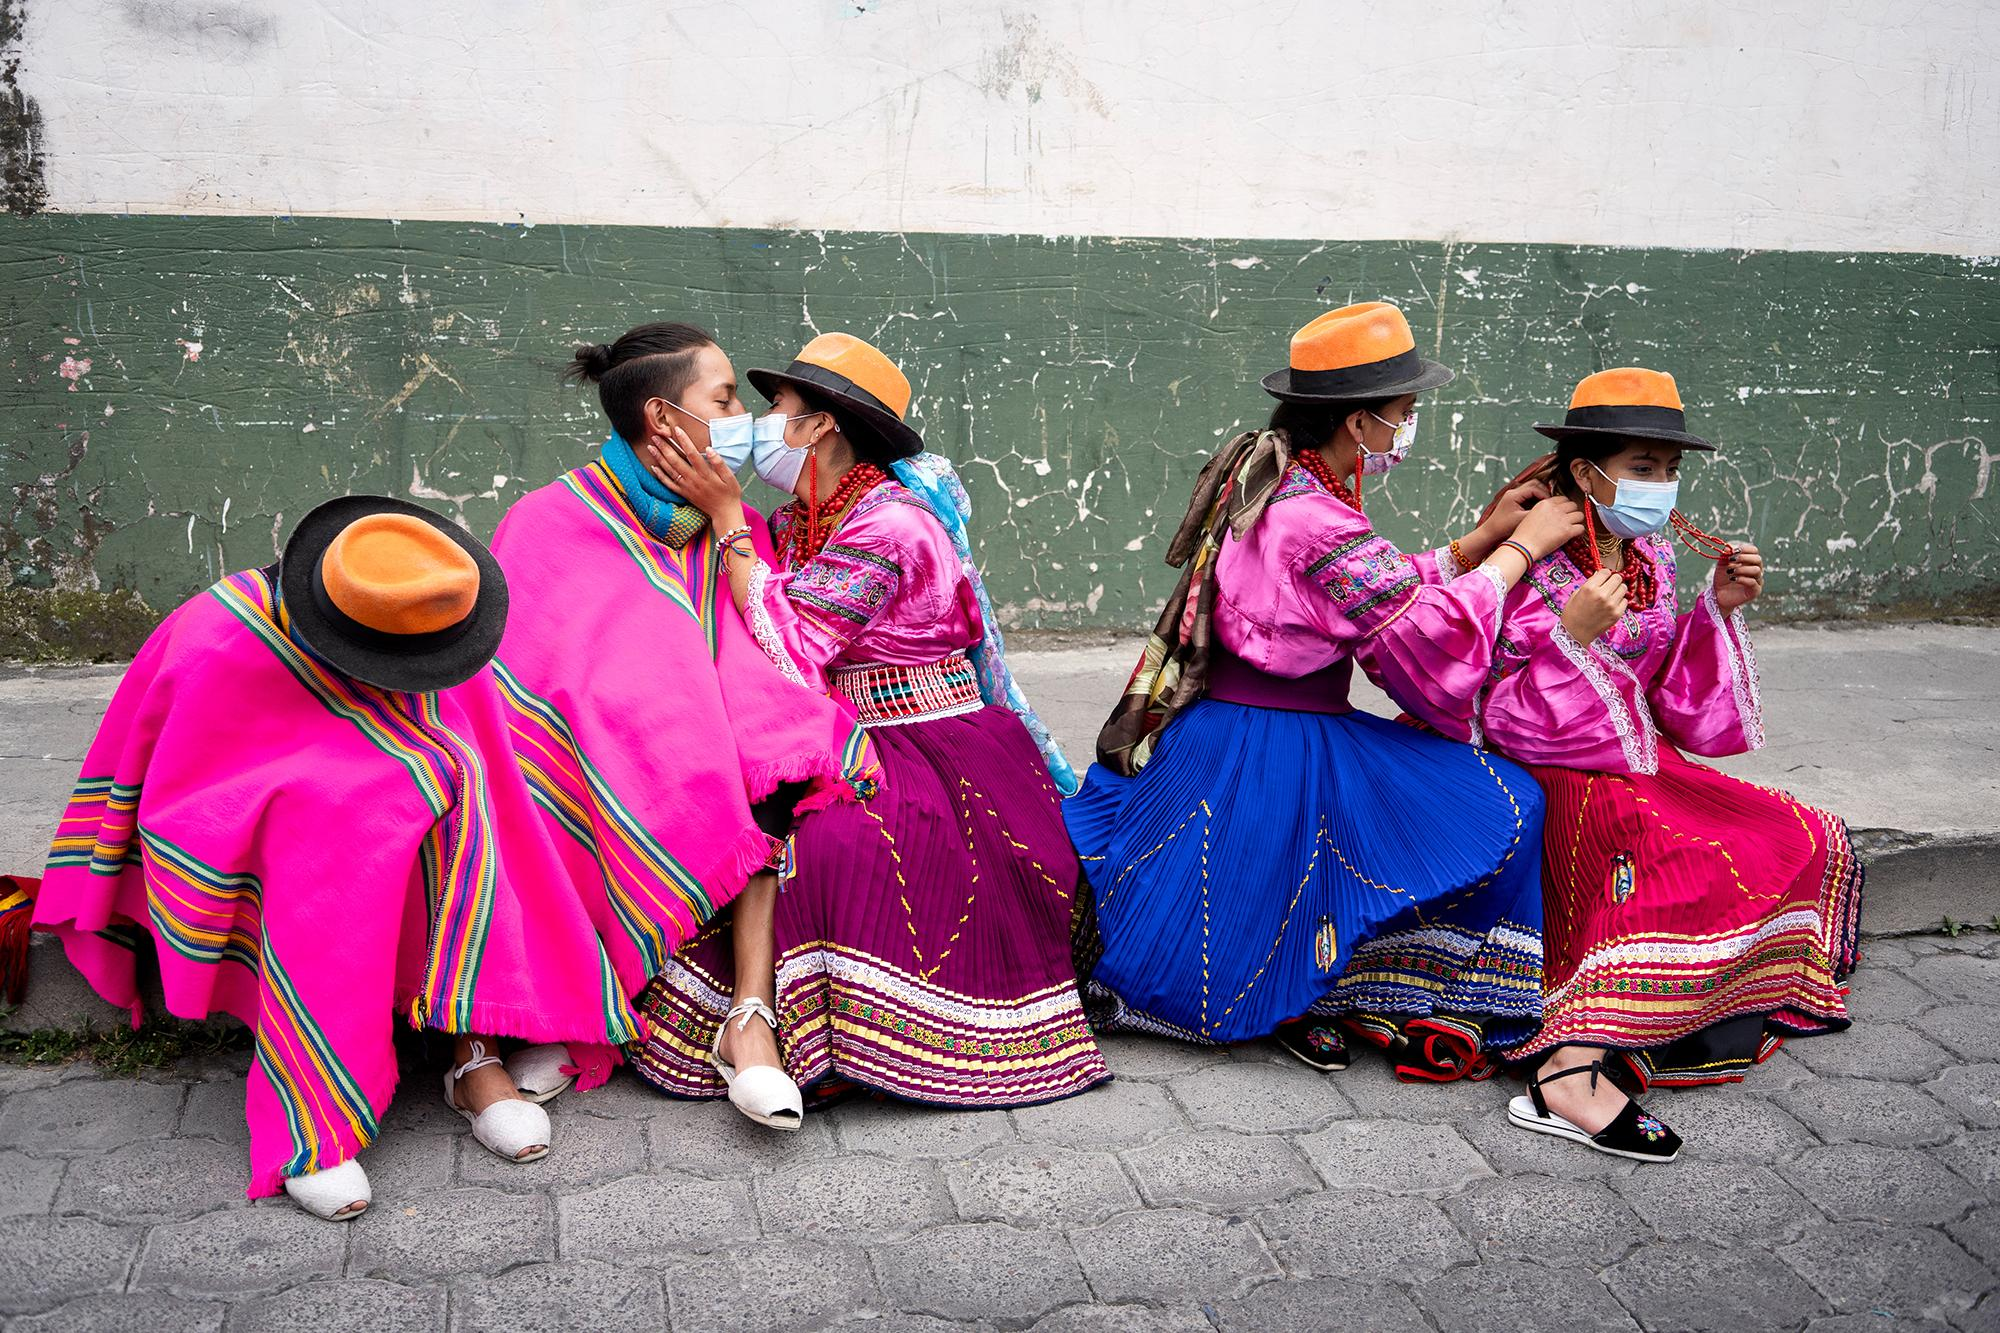 """Indigenous youth of the dance group """"Mashi Danza"""" rest after their participation in the National March for Democracy that arrived in Cotopaxi on the afternoon of February 22, 2021, demanding transparency in the electoral process of February 7th. Cotopaxi, Ecuador. Johis Alarcón for The New York Times."""